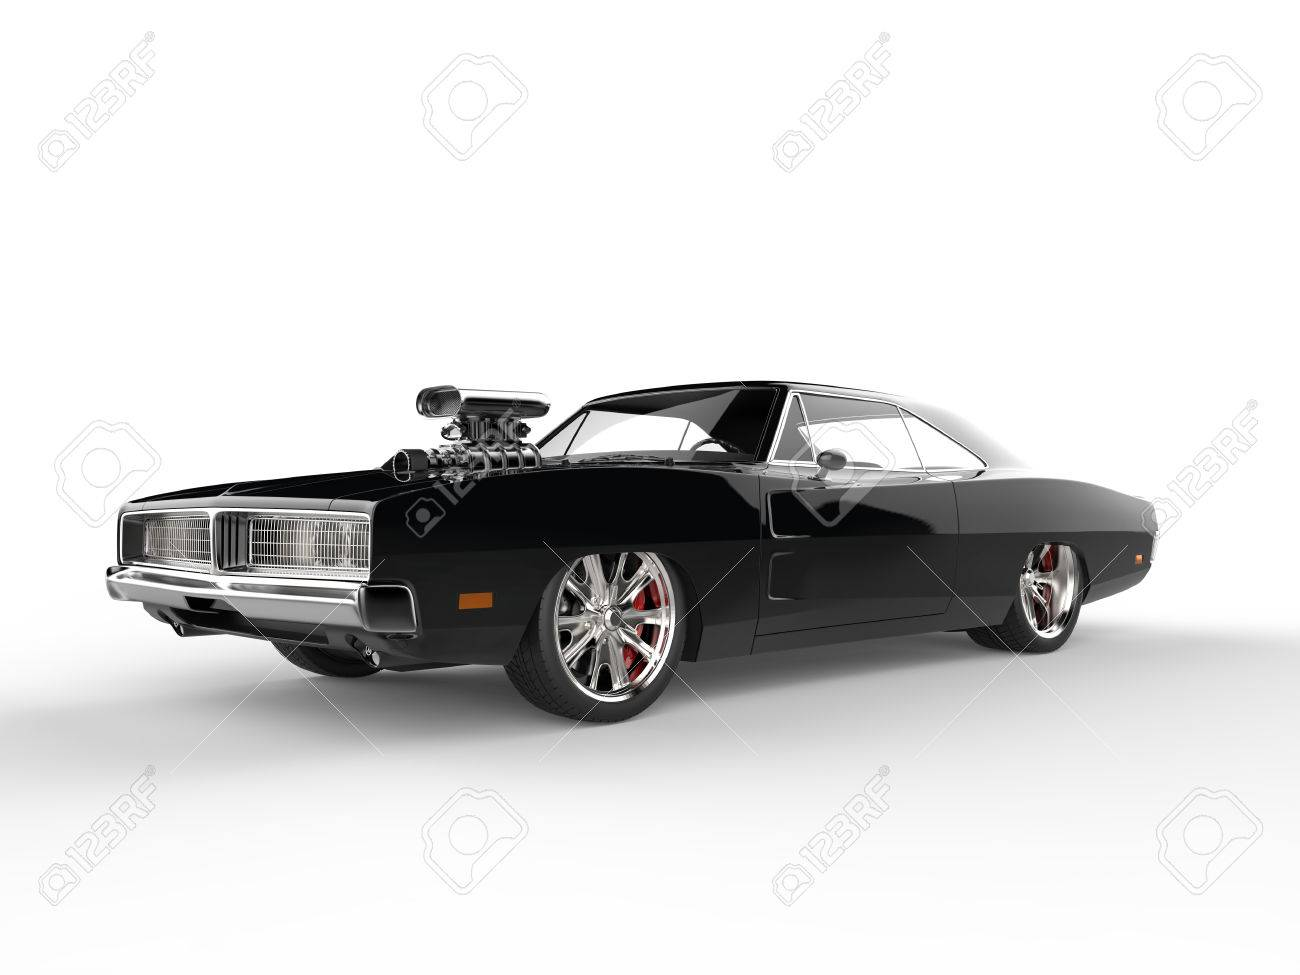 Cool Old School Black Muscle Car Stock Photo Picture And Royalty